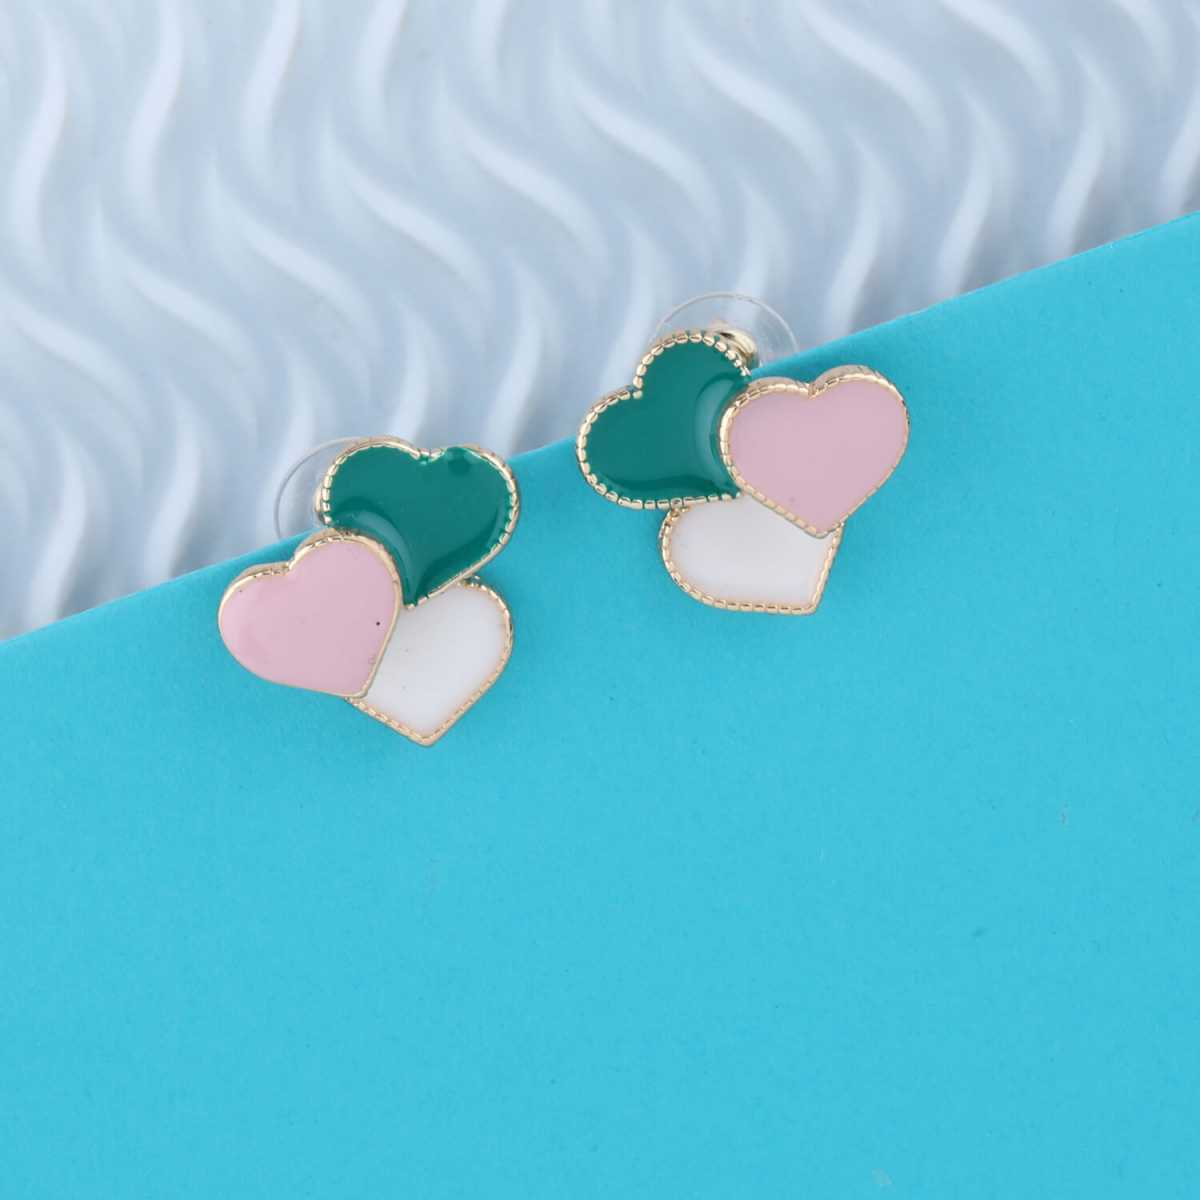 SILVER SHINE Delicated Charm Heart Shape Studs earring For girl Women